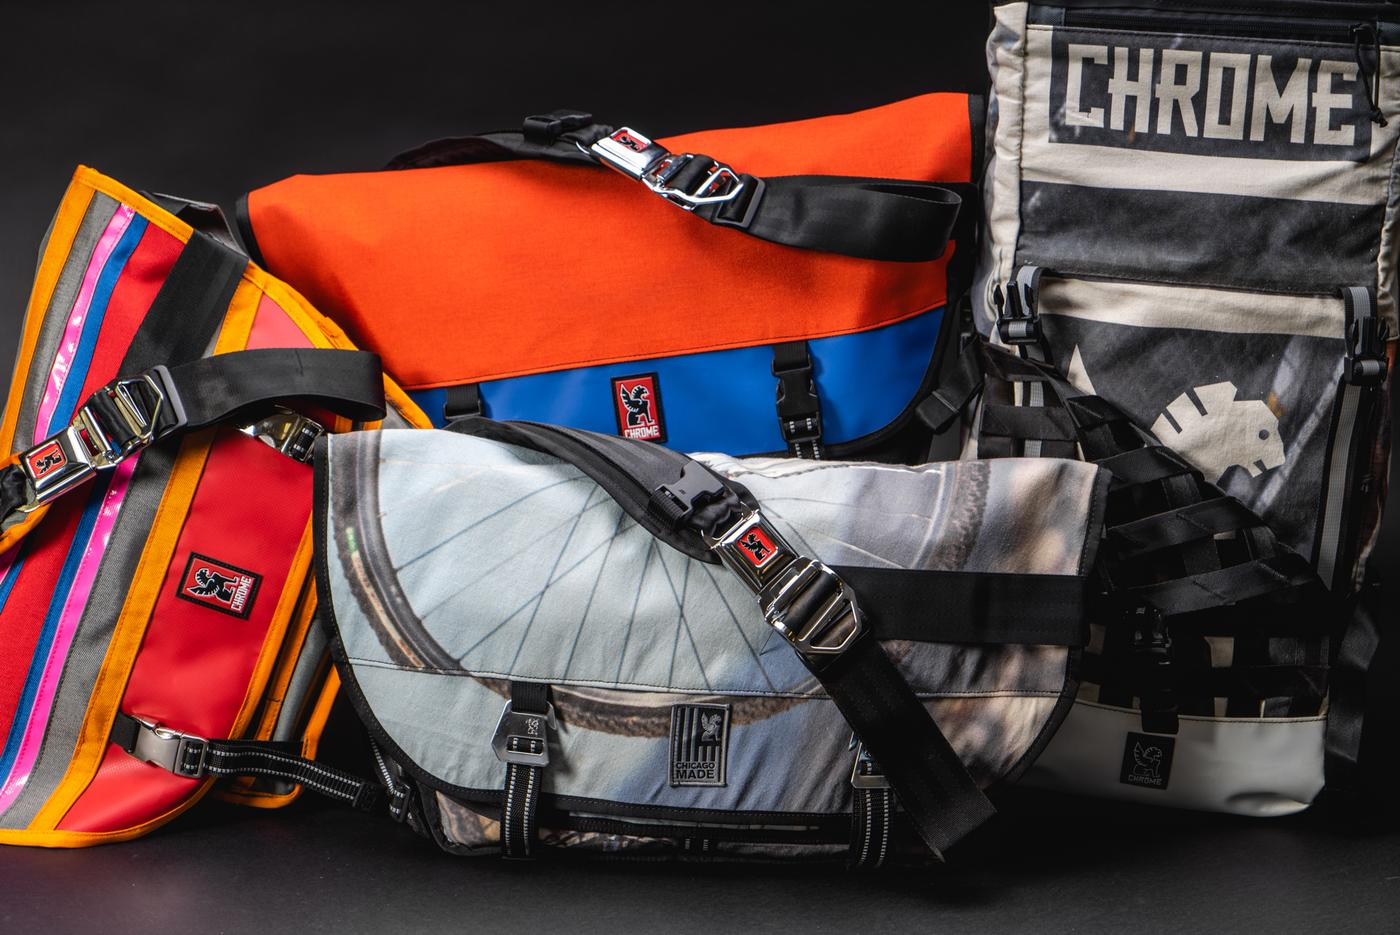 Win One of Four Custom Chrome Bags